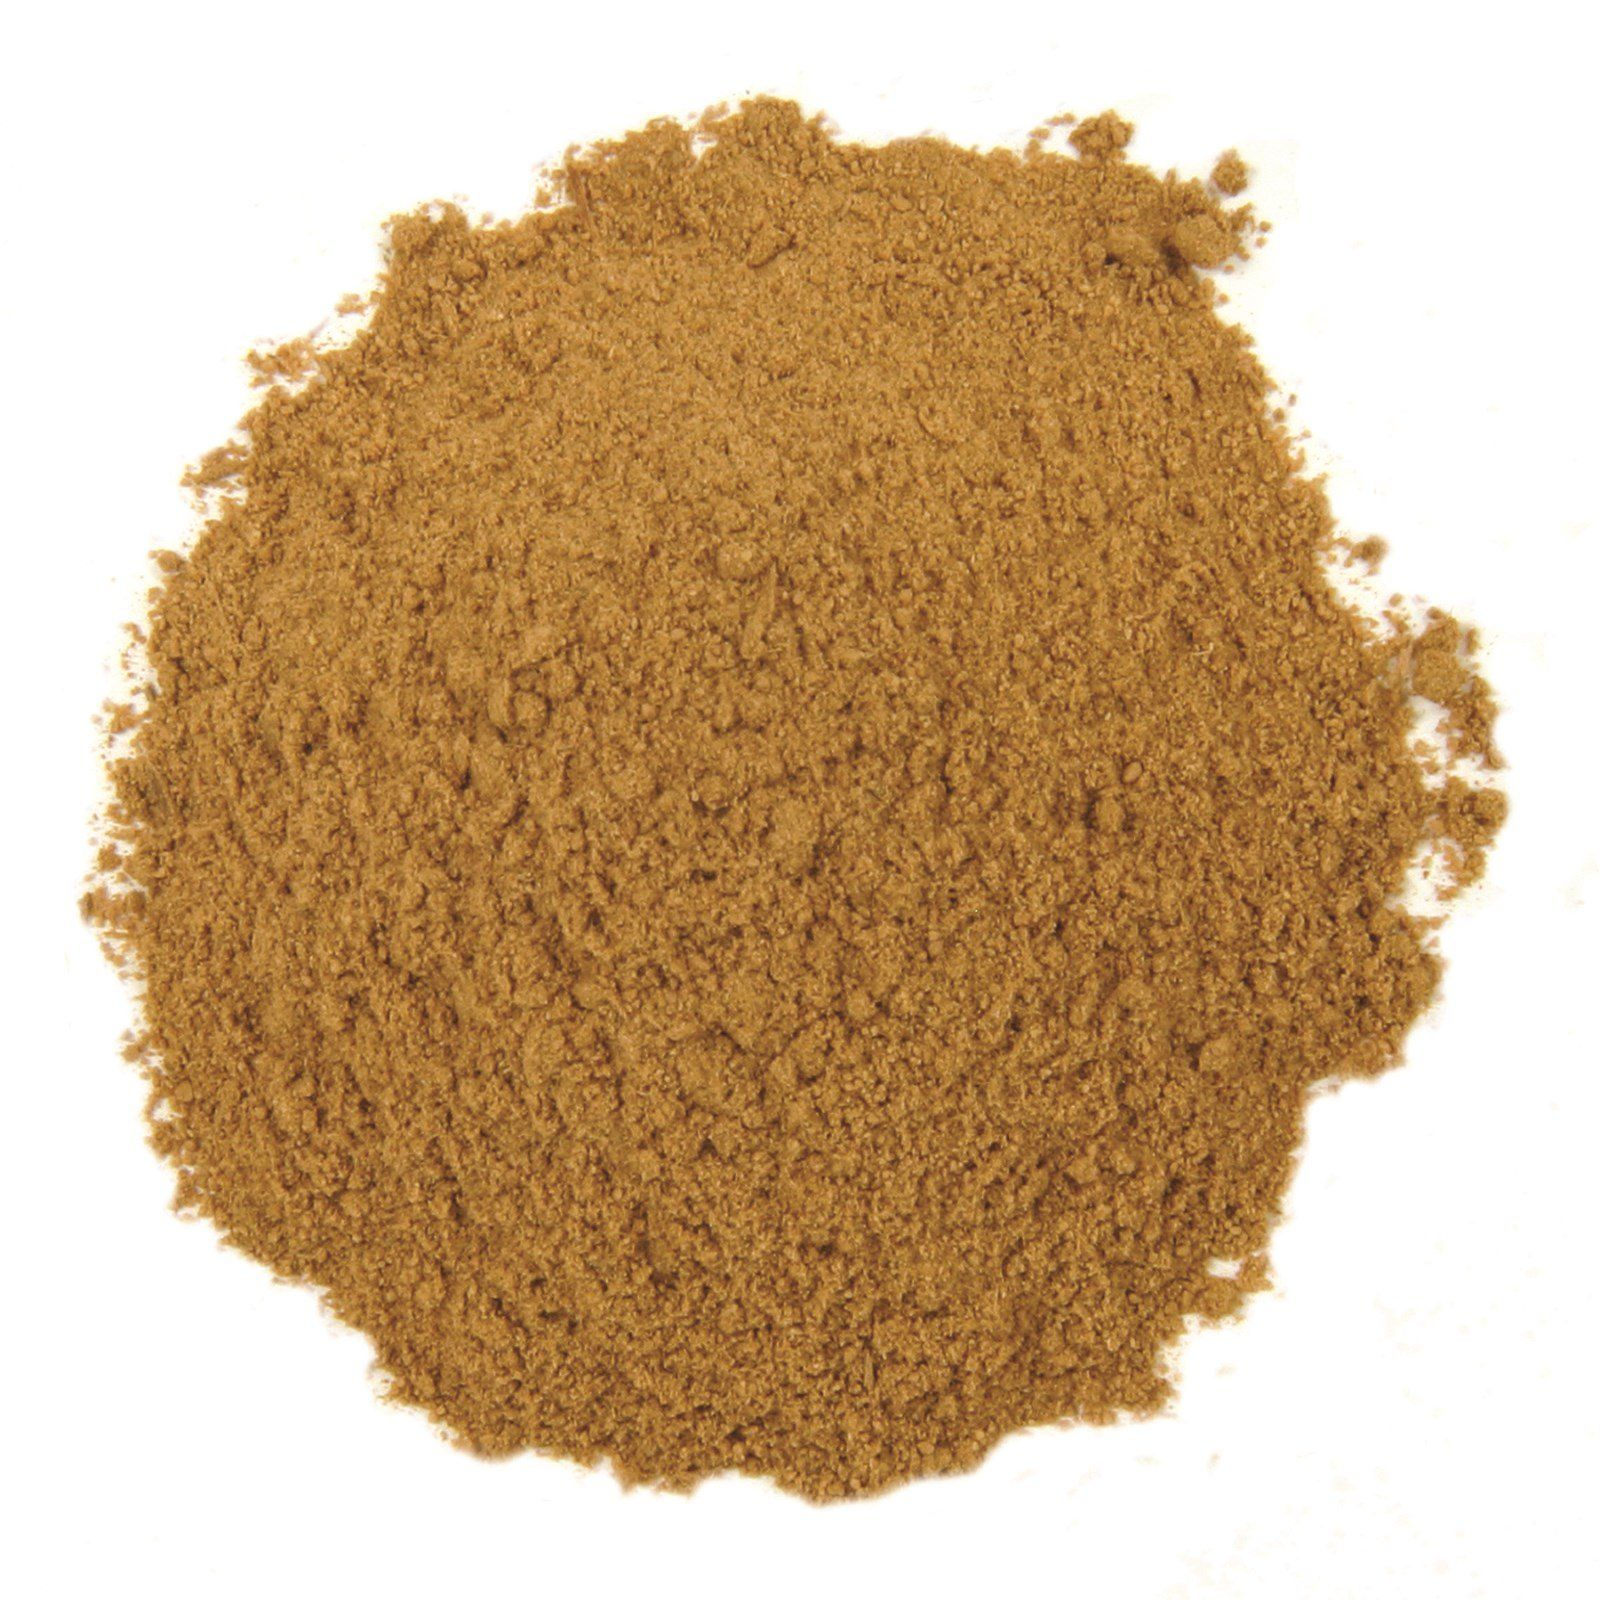 Frontier Natural Products Organic Ground Ceylon Cinnamon 16 Oz 453 G Ceylon Cinnamon Powder Ceylon Cinnamon Cinnamon